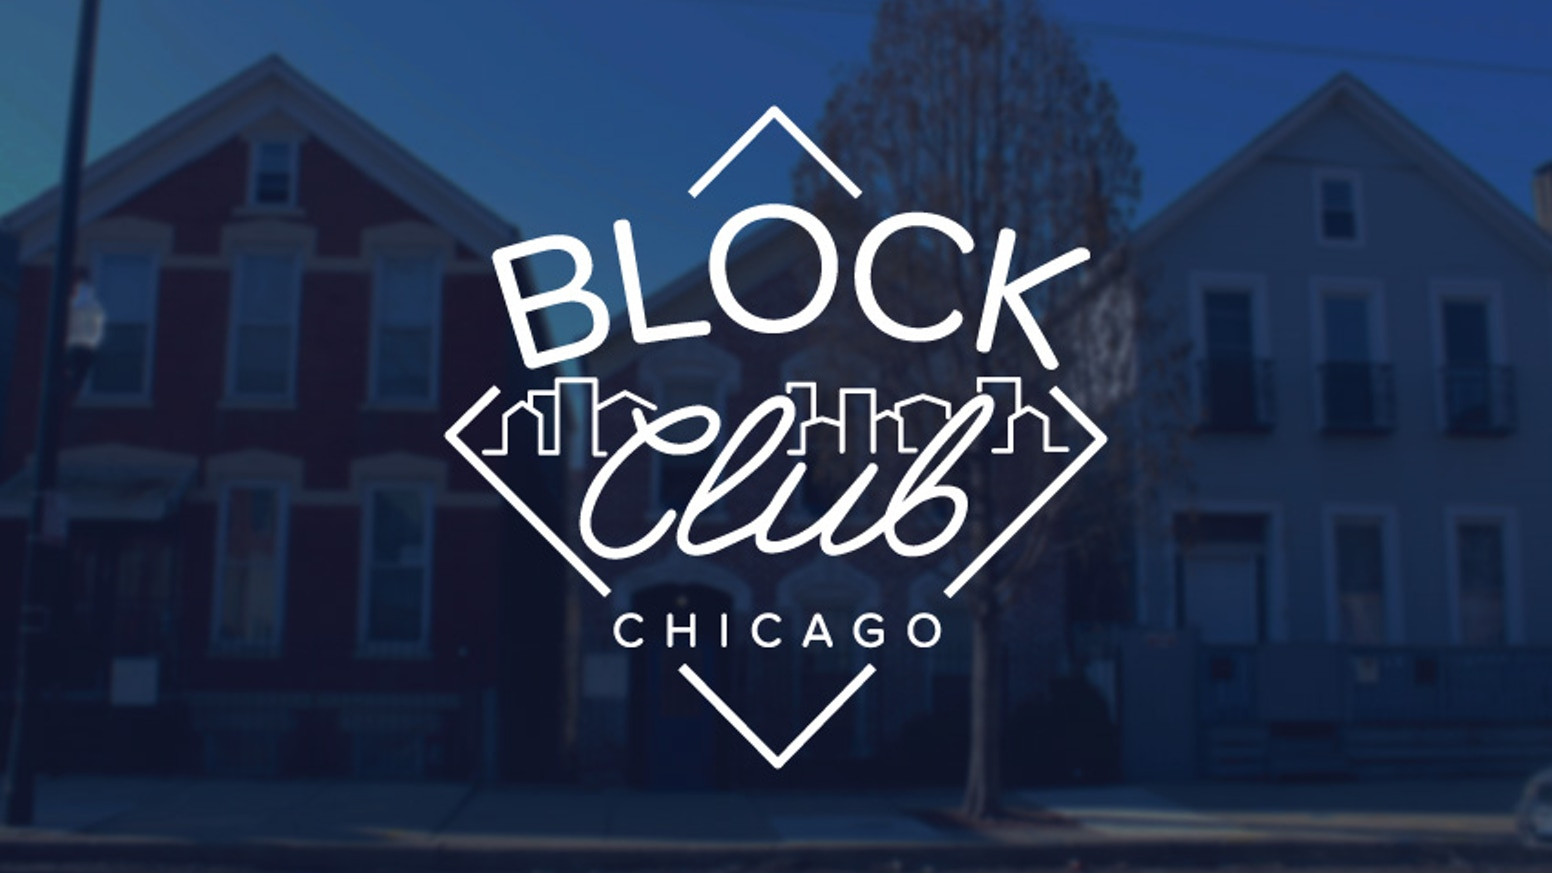 Bringing Neighborhood News Back by Block Club Chicago by Block Club